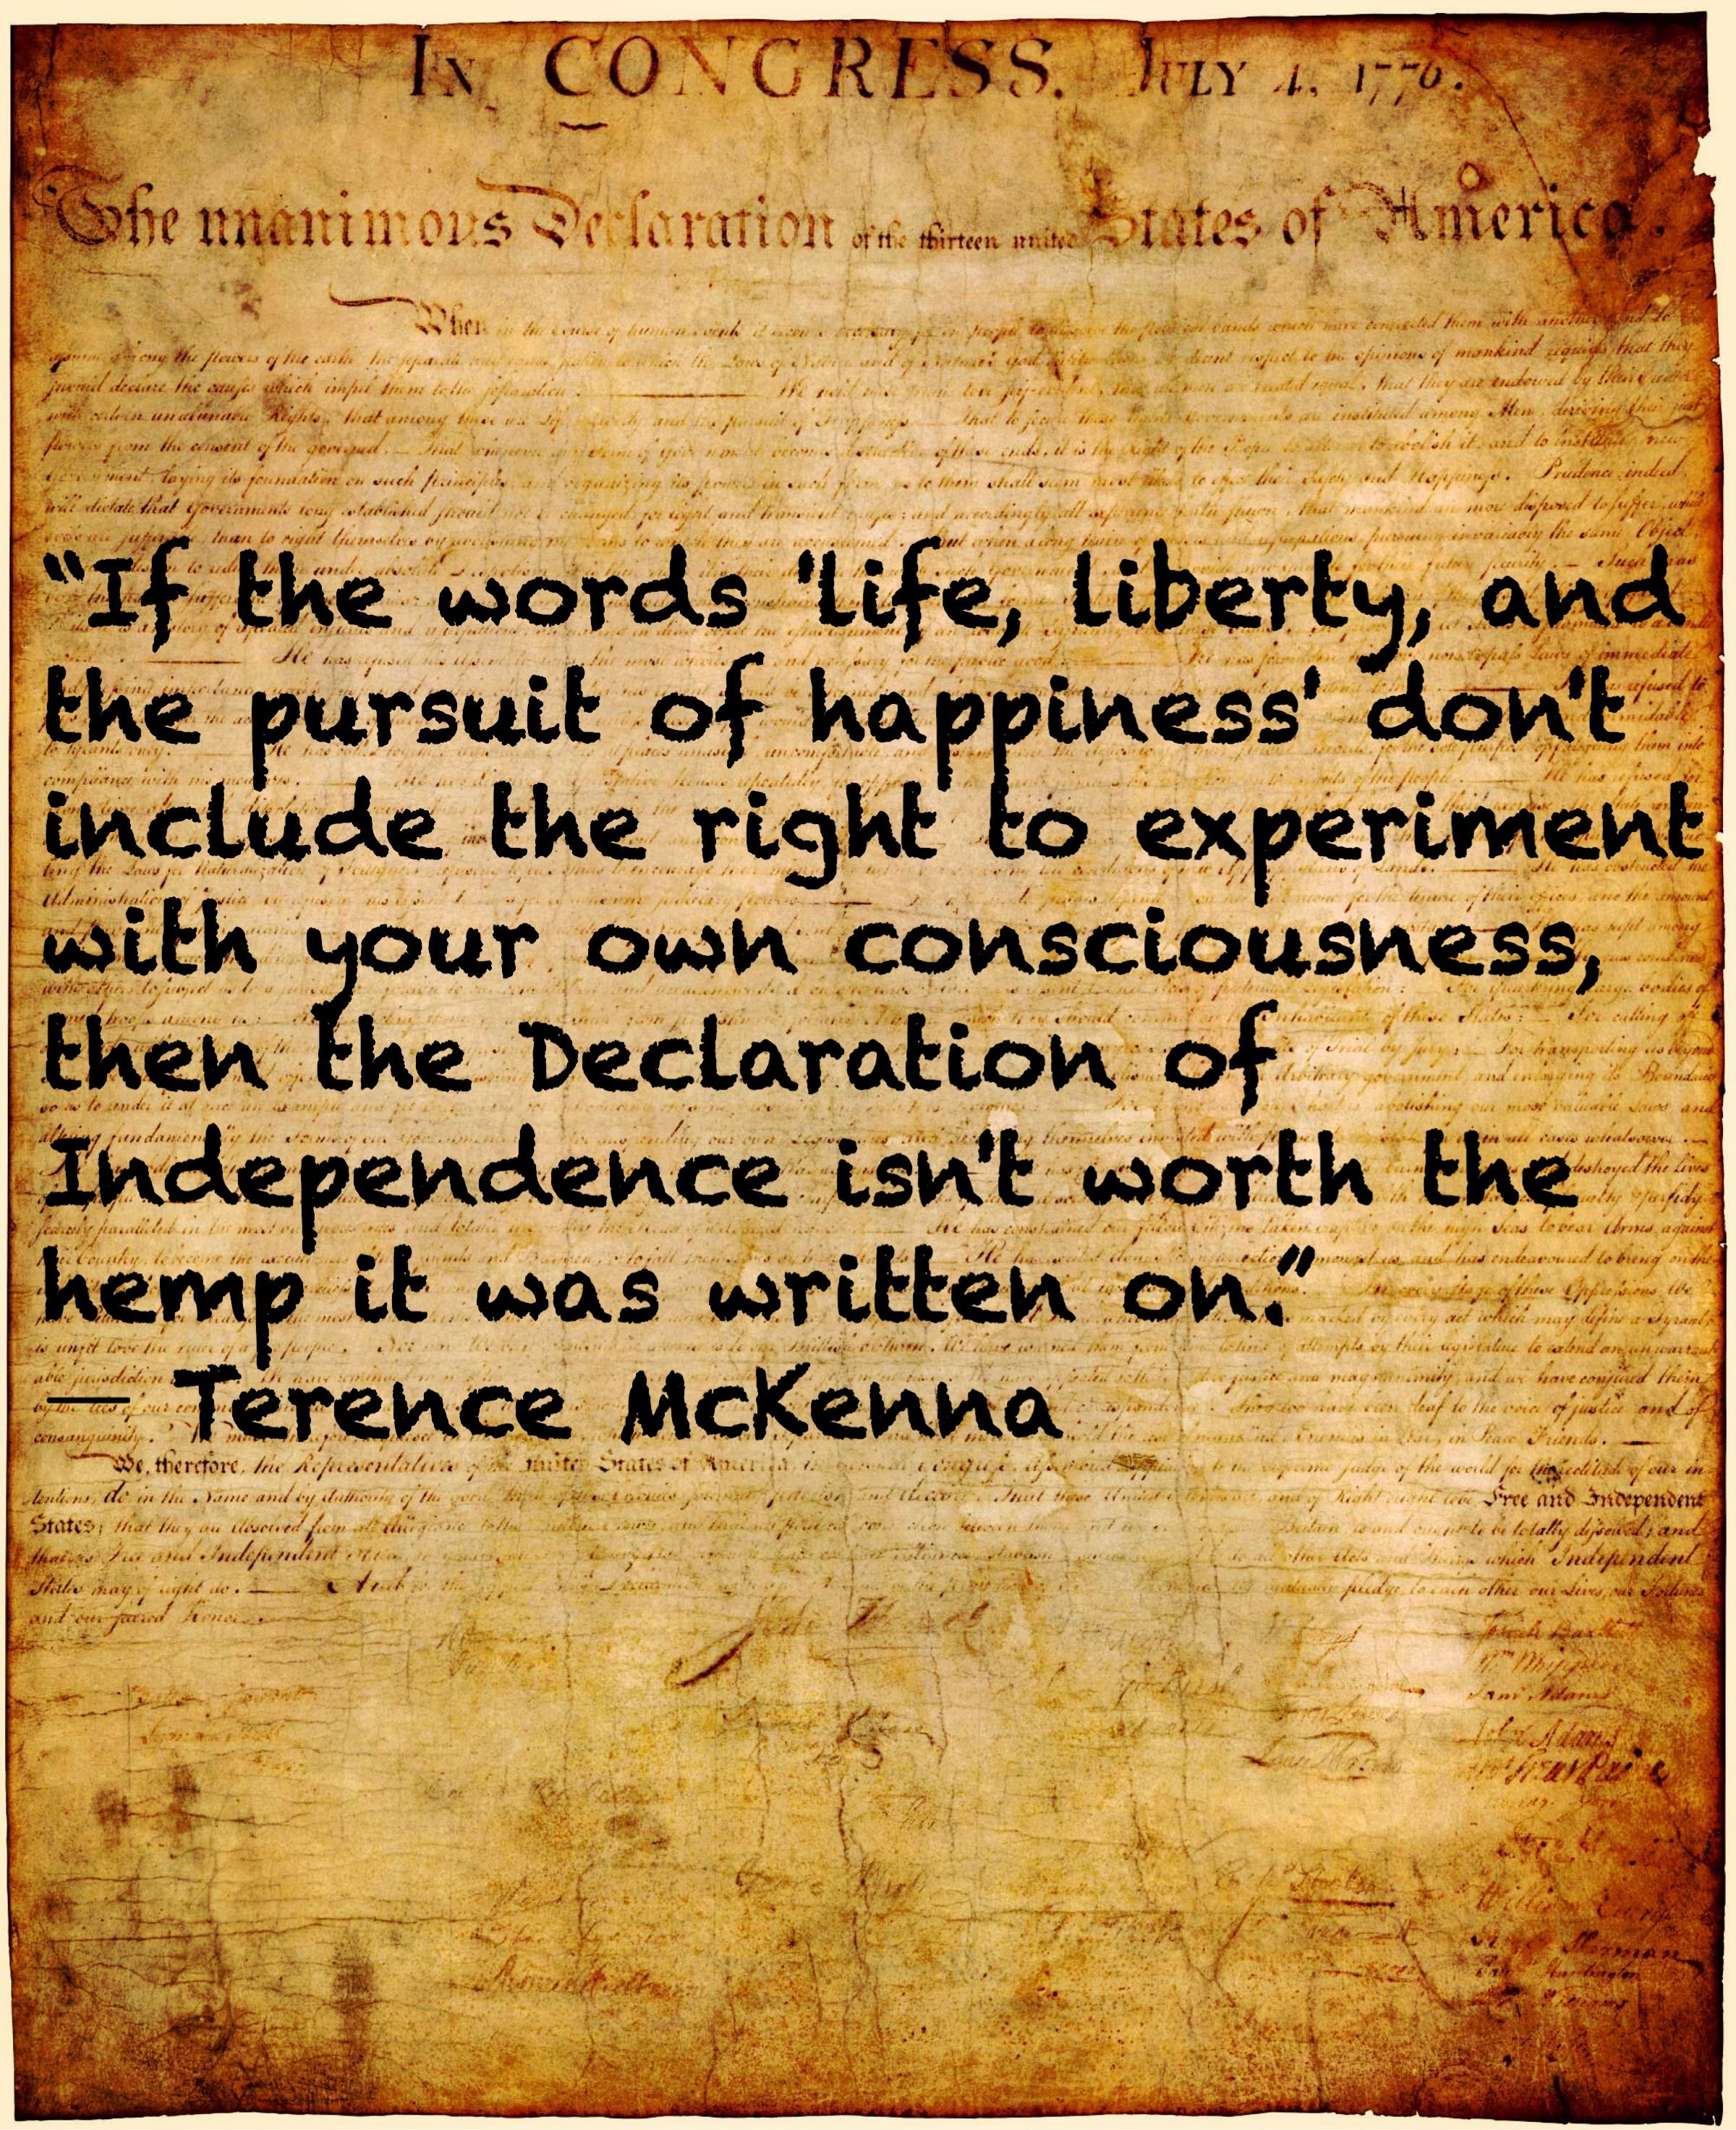 Life Liberty And The Pursuit Of Happiness Quote If The Words 'life Liberty And The Pursuit Of Happiness' Don't